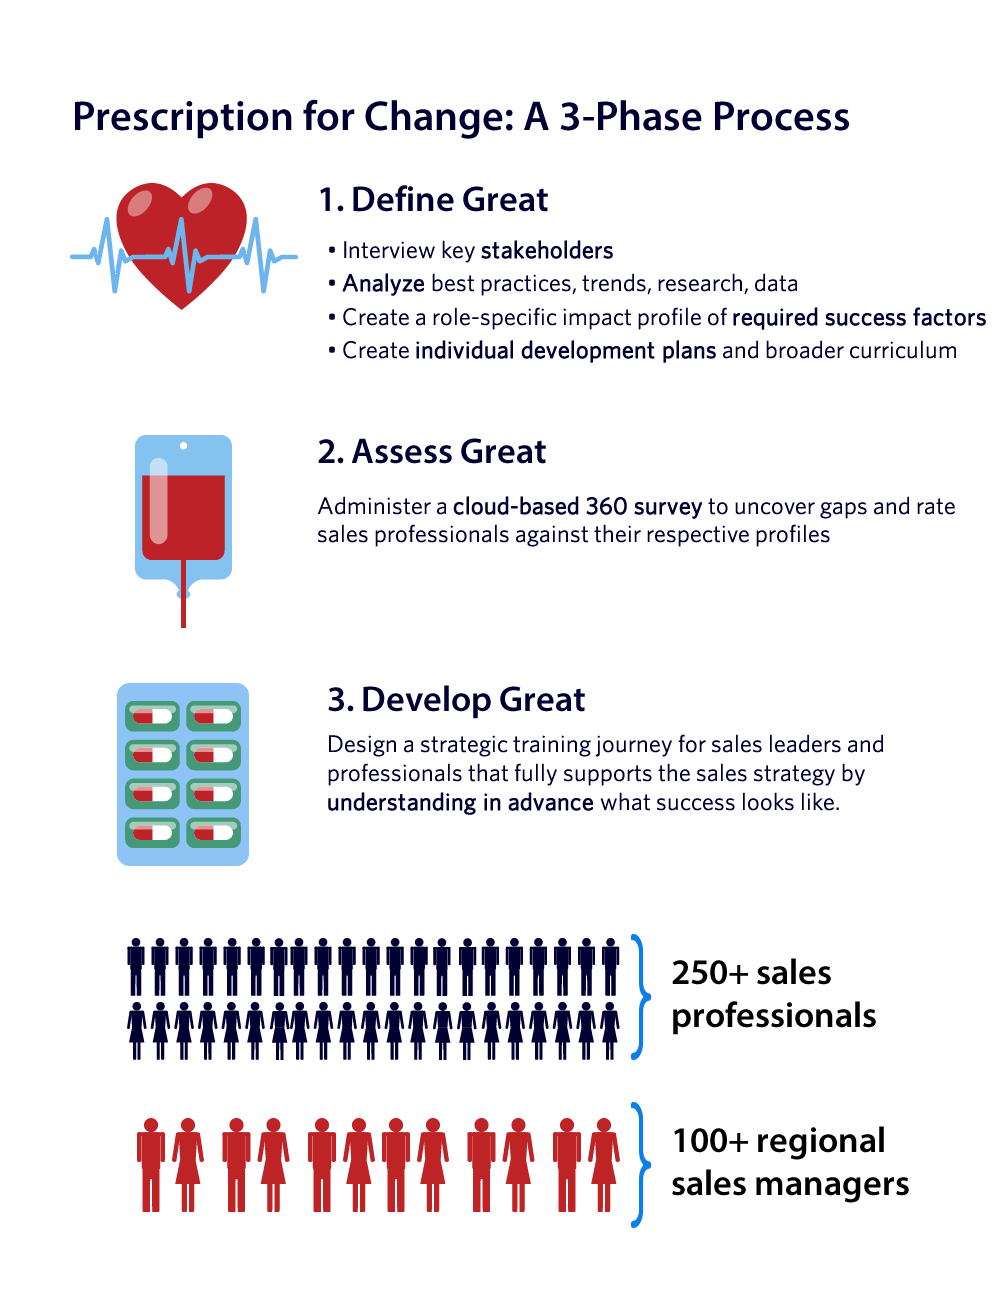 pharma-sales-infographic-v2